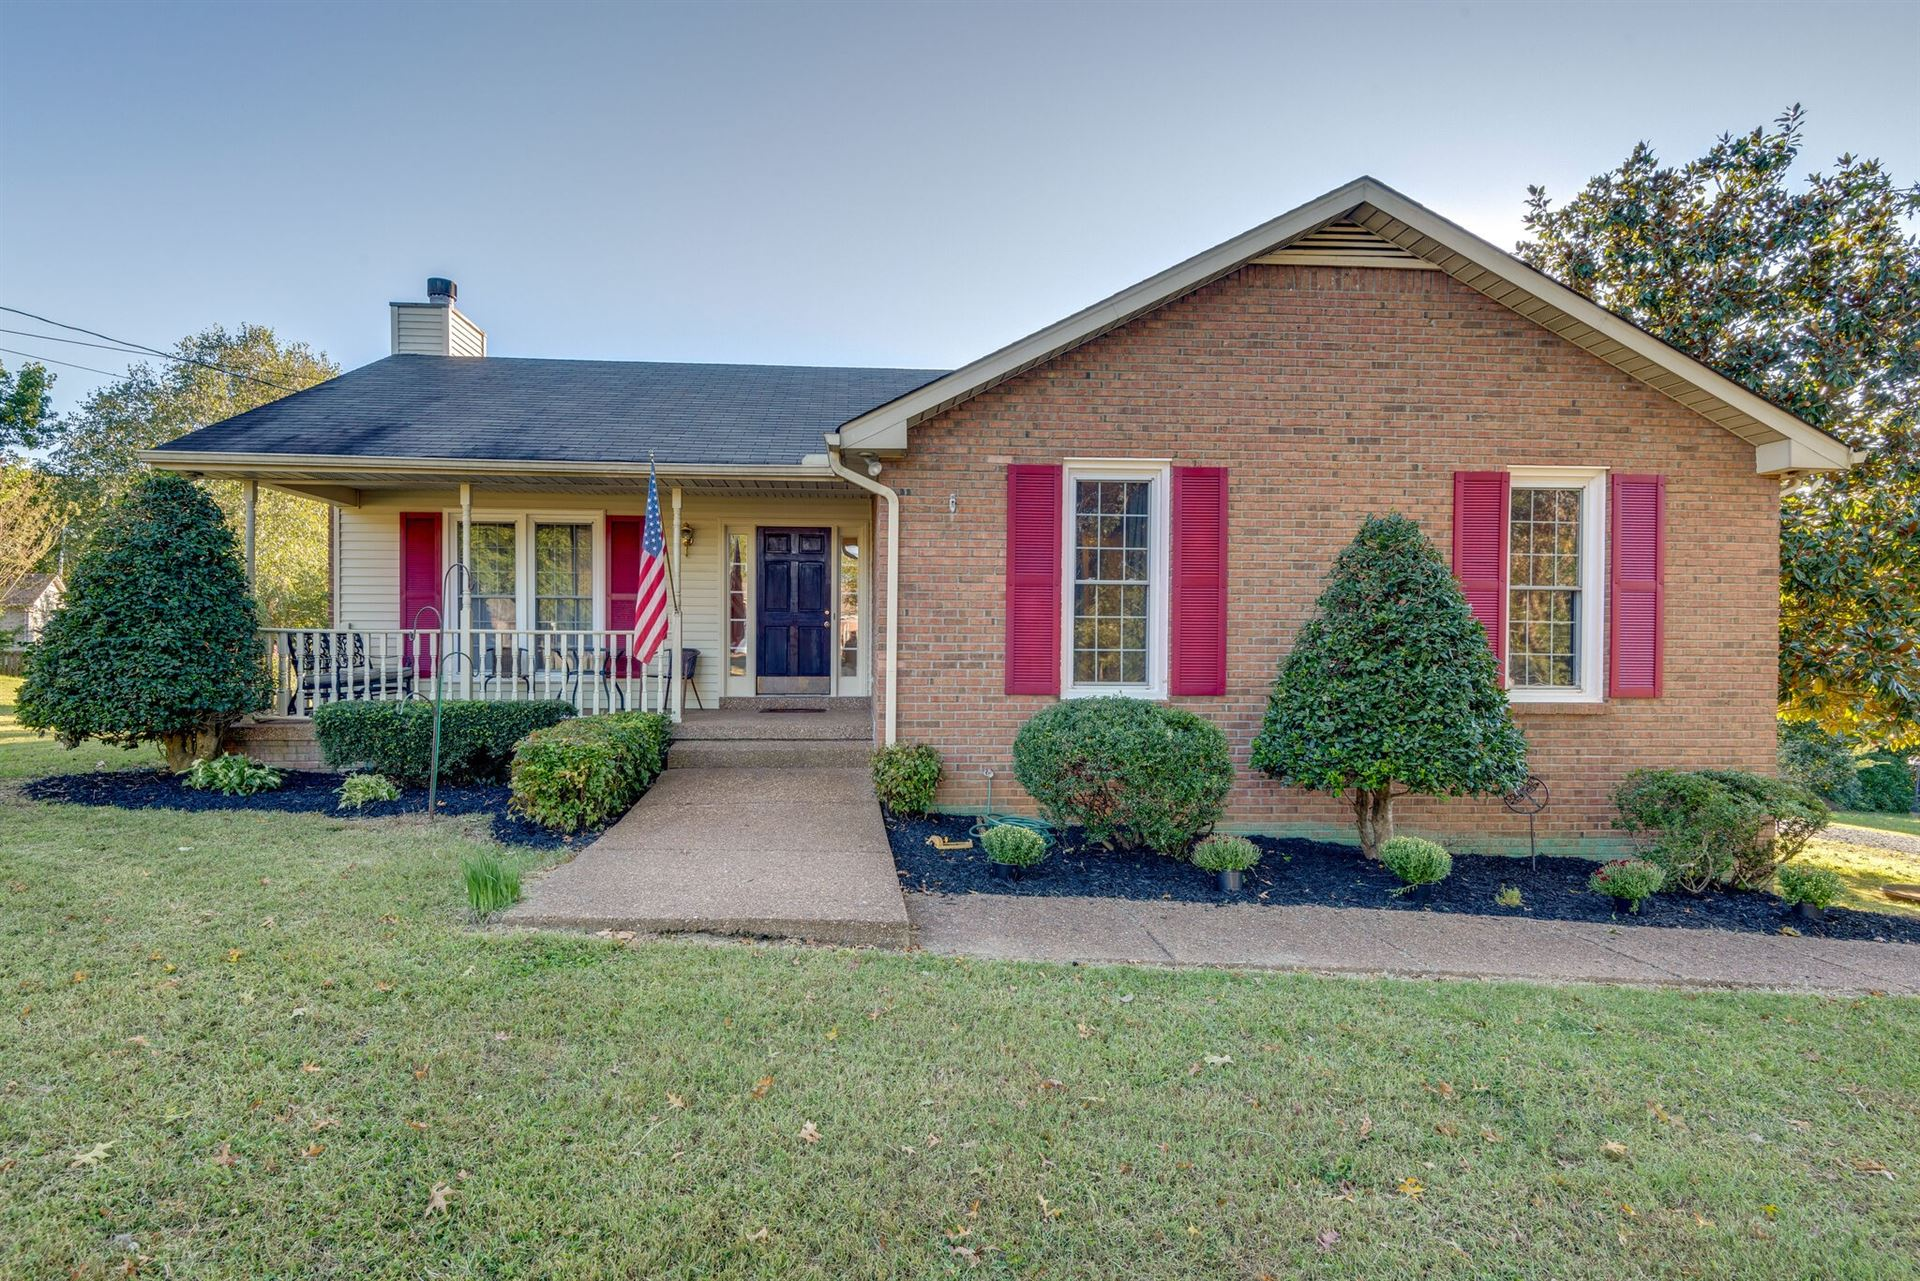 7213 Clearview Dr, Fairview, TN 37062 - MLS#: 2196694